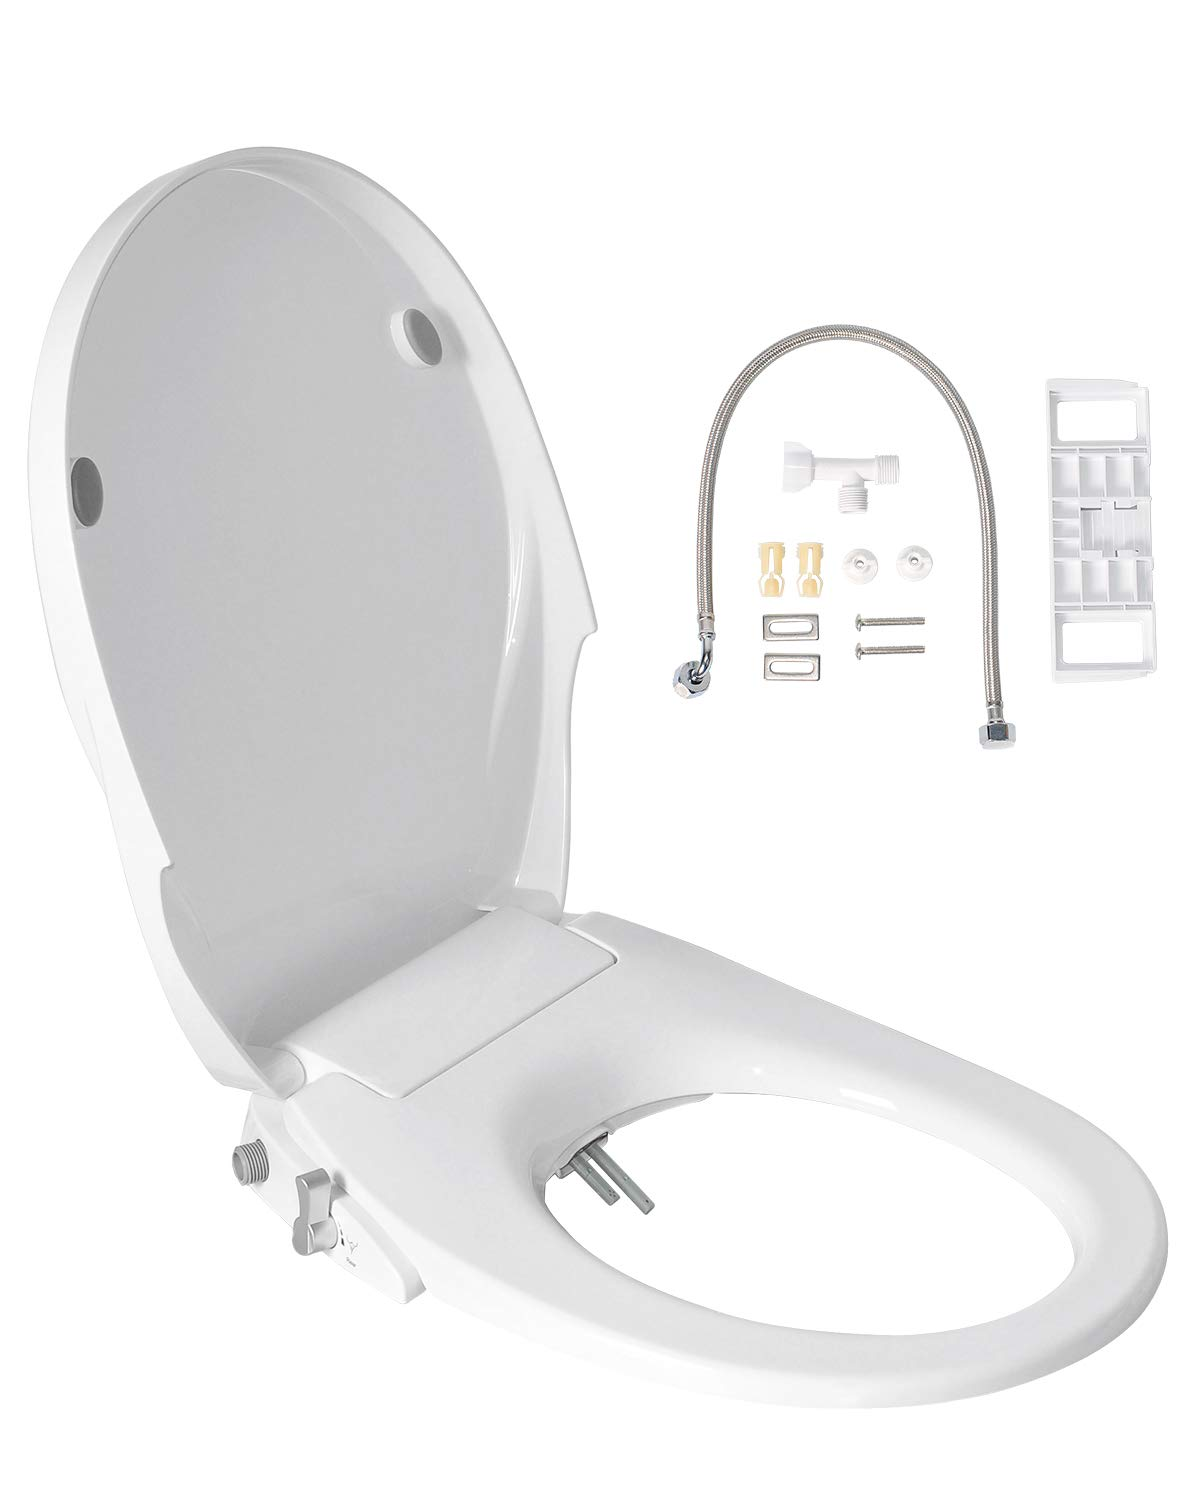 Uni-Green Toilet Seat Bidet, White with Quiet-Close Lid and Seat, Dual Wash Nozzles for Rear and Feminine Spray,Non-Electronic